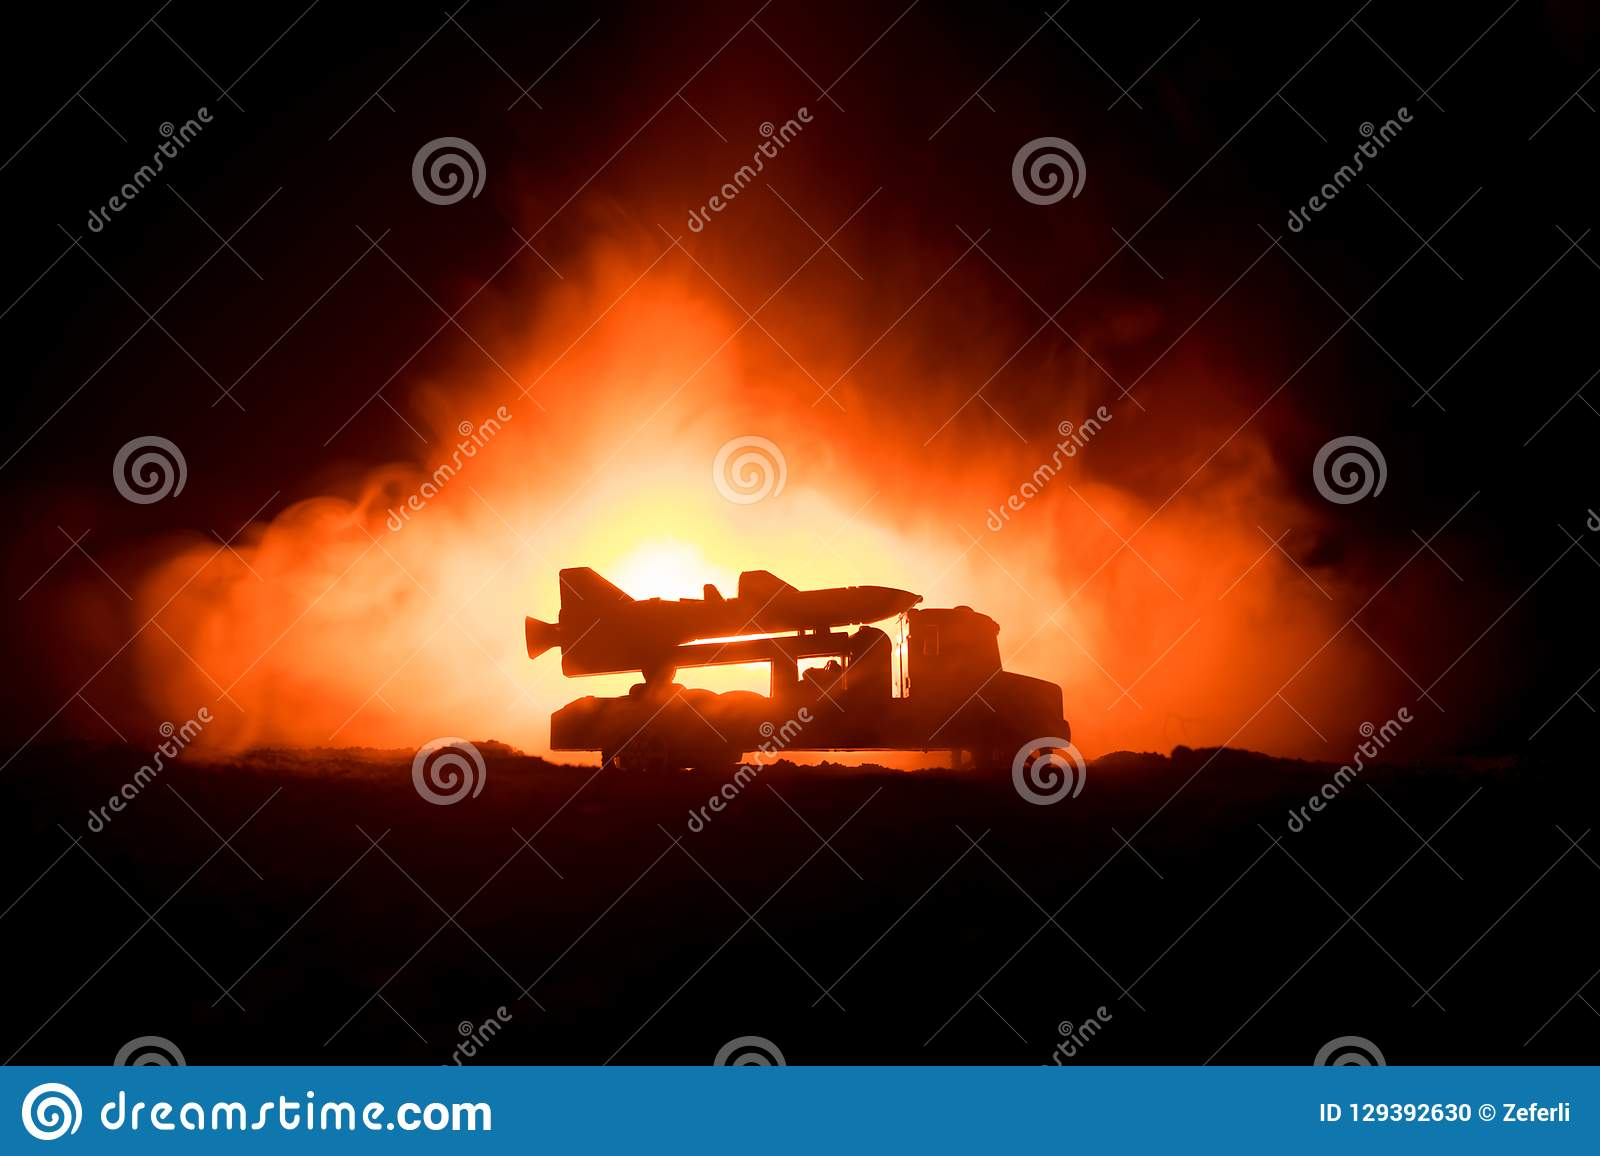 Rocket launch with fire clouds. Battle scene with rocket Missiles with Warhead Aimed at Gloomy Sky at night. Rocket vehicle on War